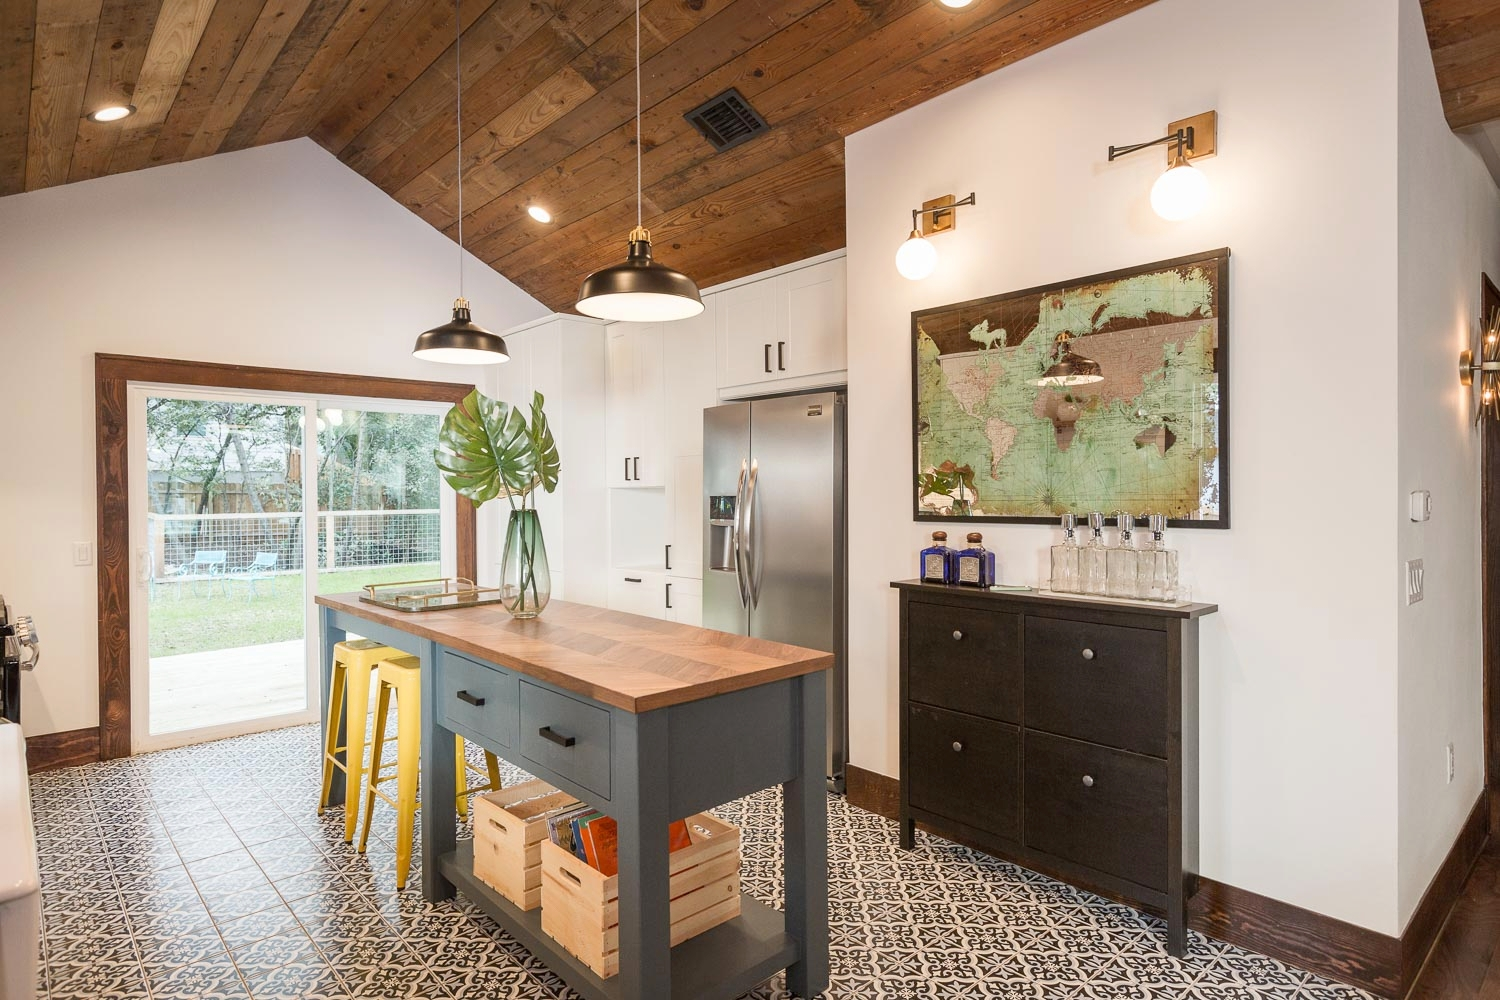 Another view of the bar and teal farmhouse island with walnut butcher block. The yellow barstools stand out and tie into the front door color and gold accents.